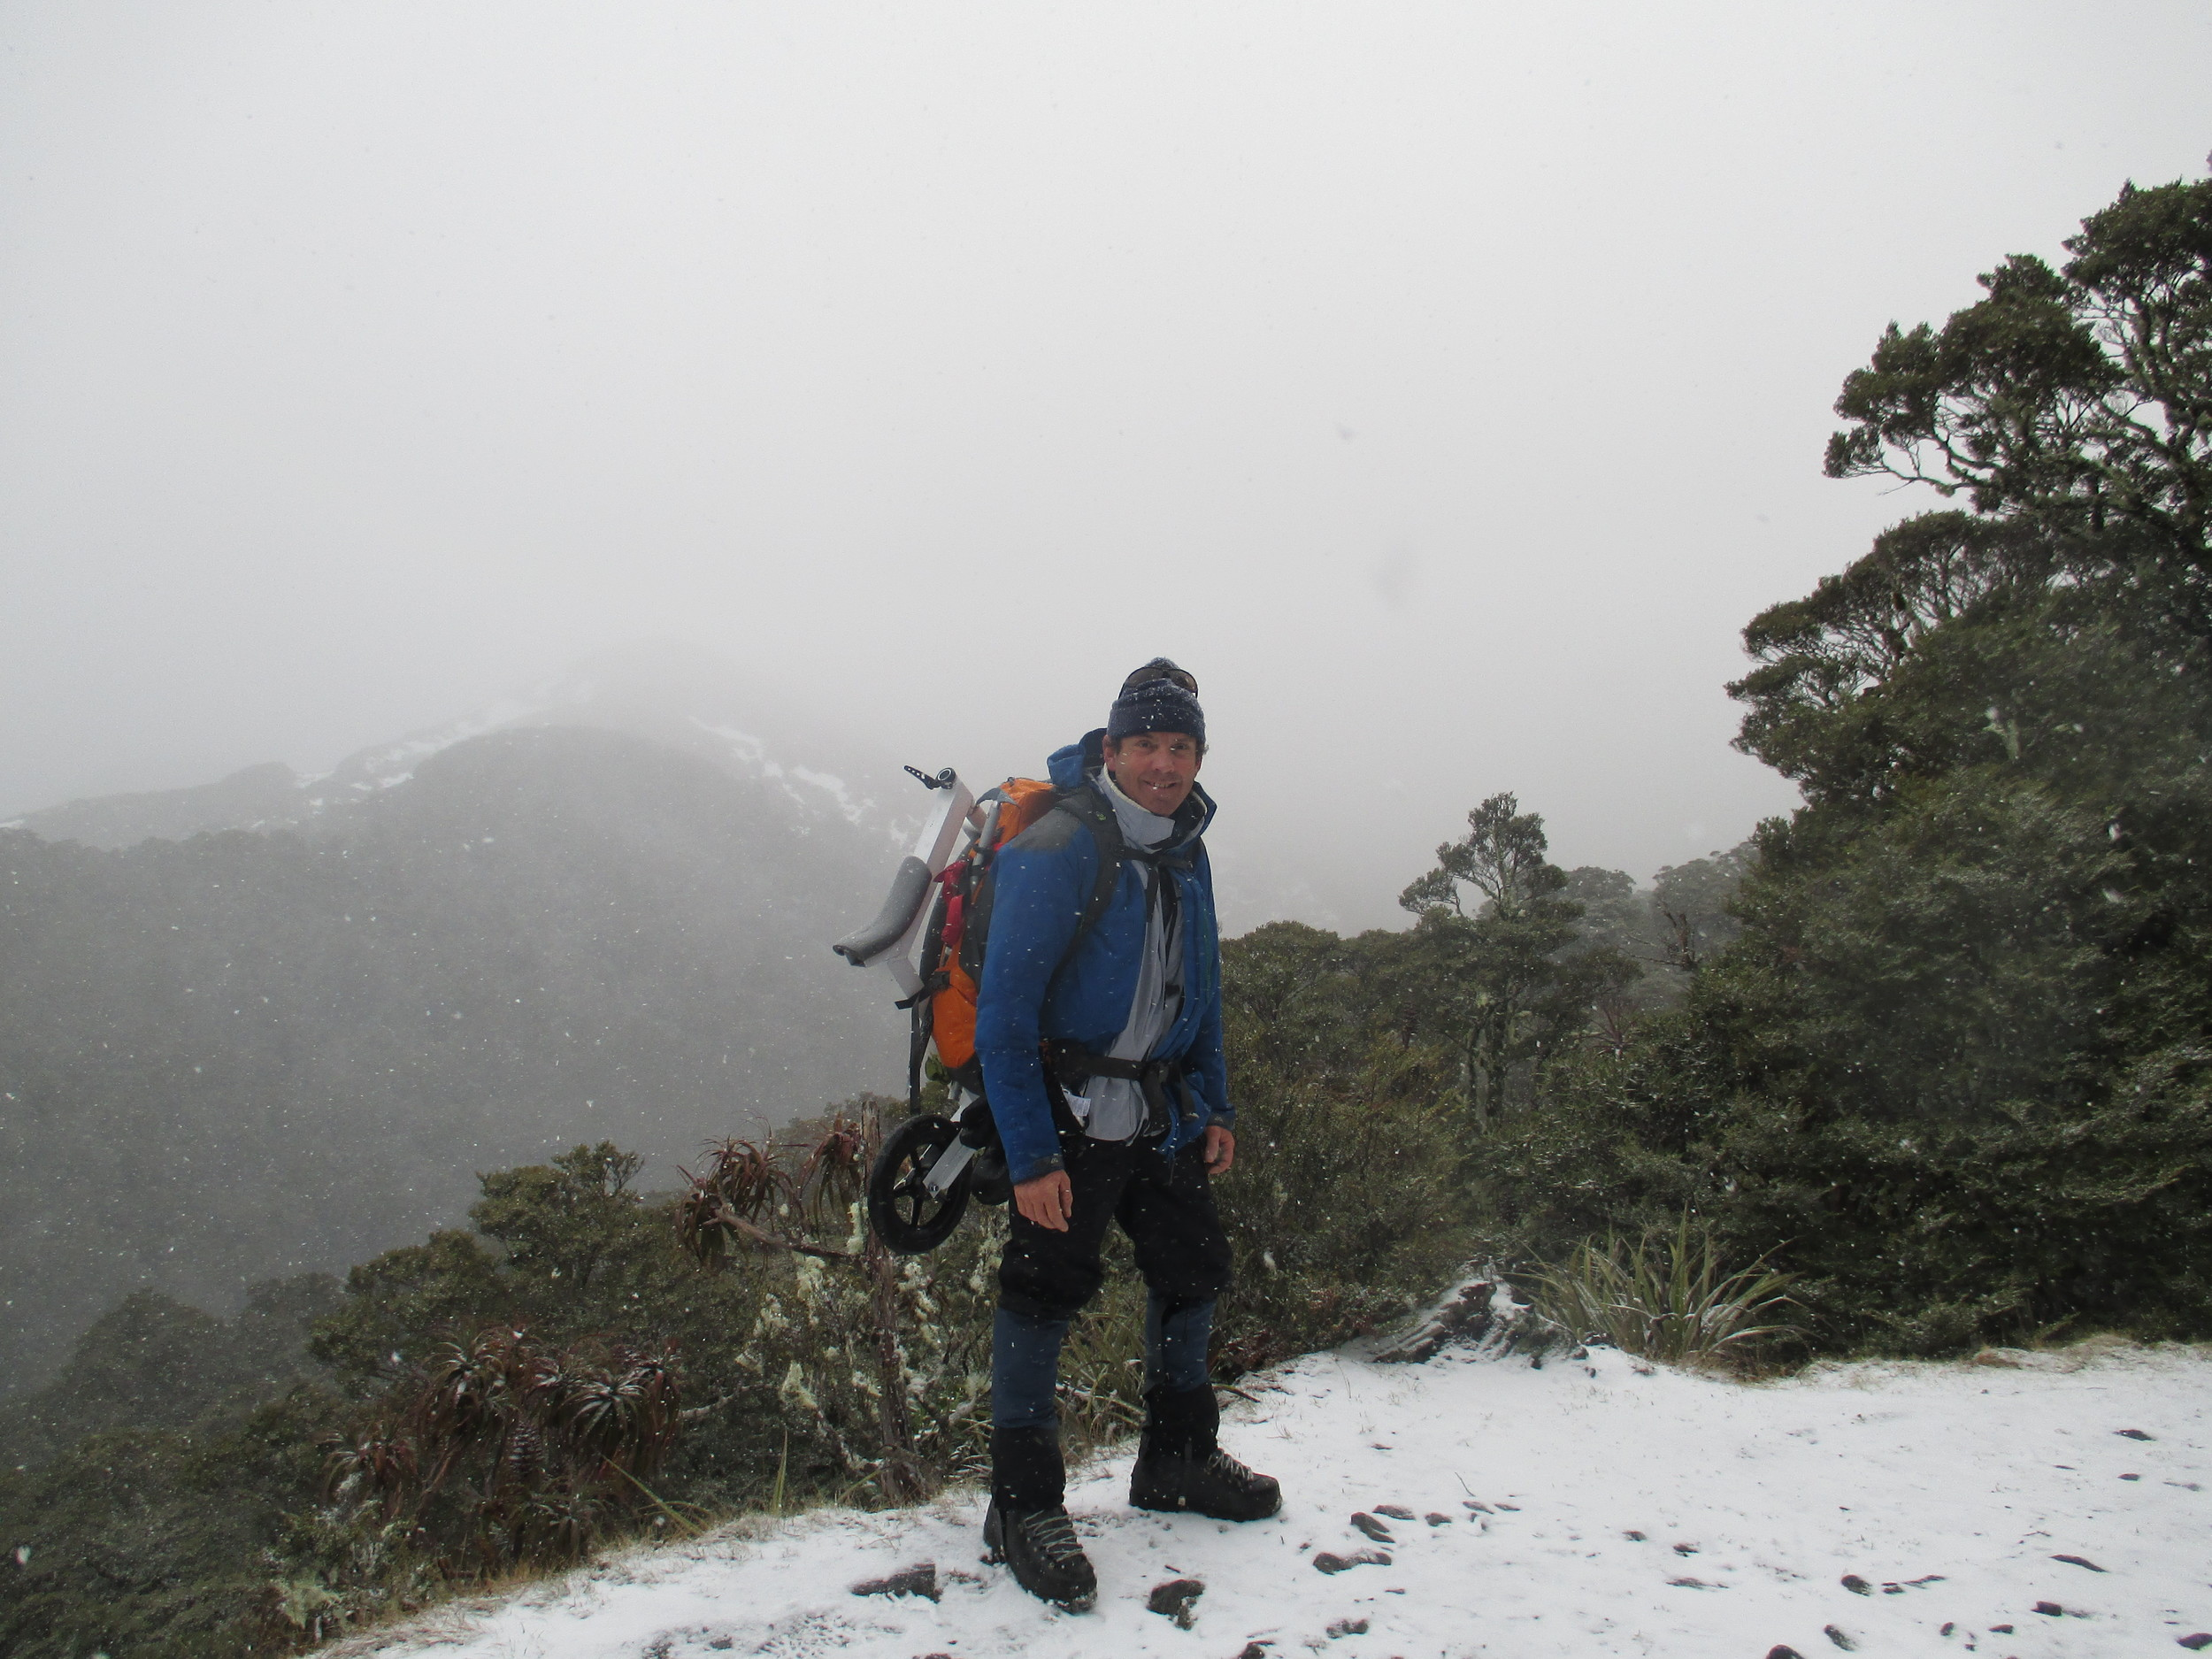 Heading up Mt Arthur in a storm 2015